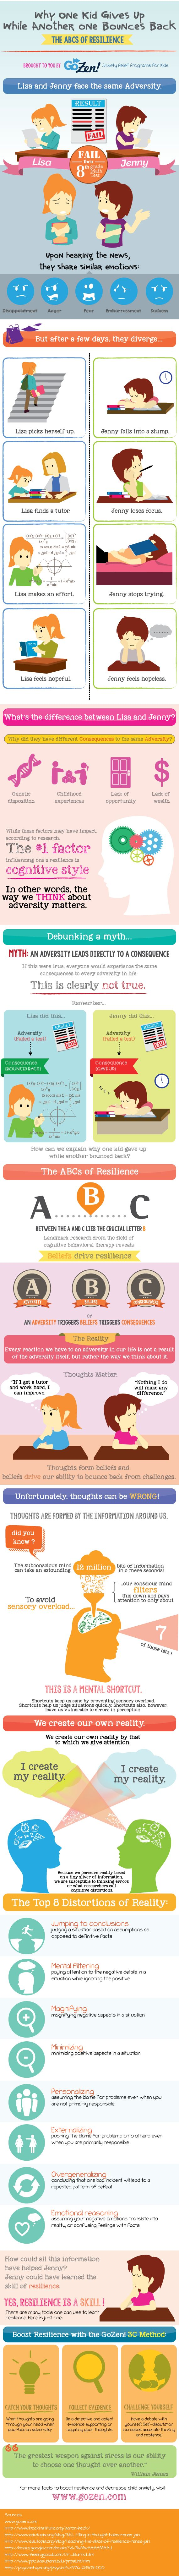 Why One Kid Gives Up While Another Bounces Back (INFOGRAPHIC)